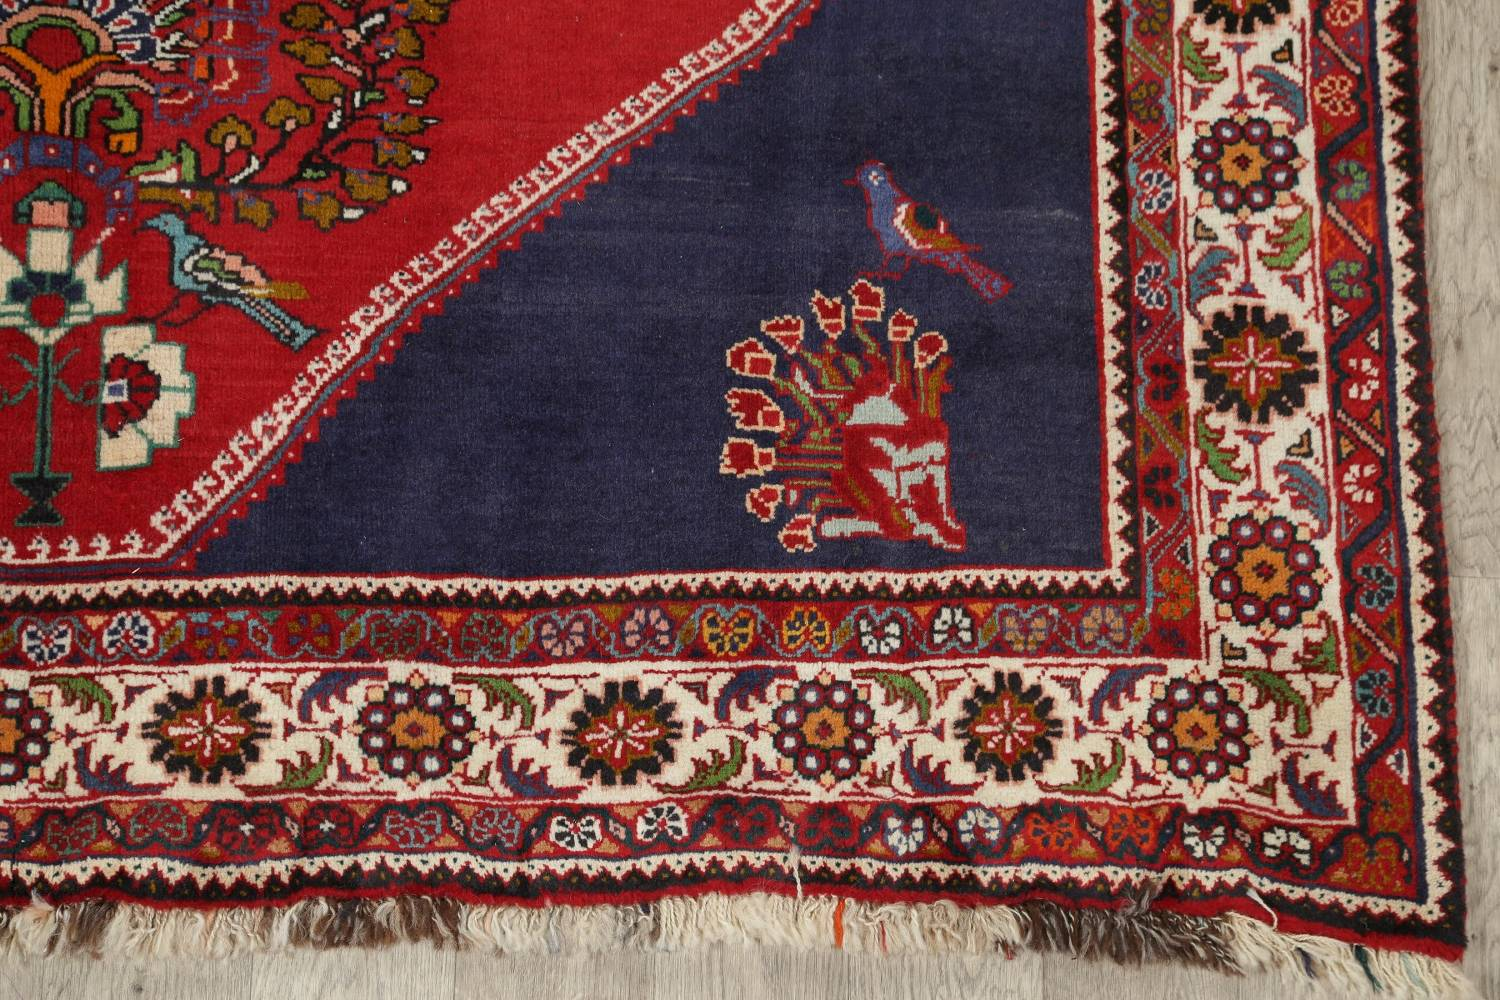 Animal Pictorial Kashkoli Persian Hand-Knotted 7x9 Wool Area Rug image 6